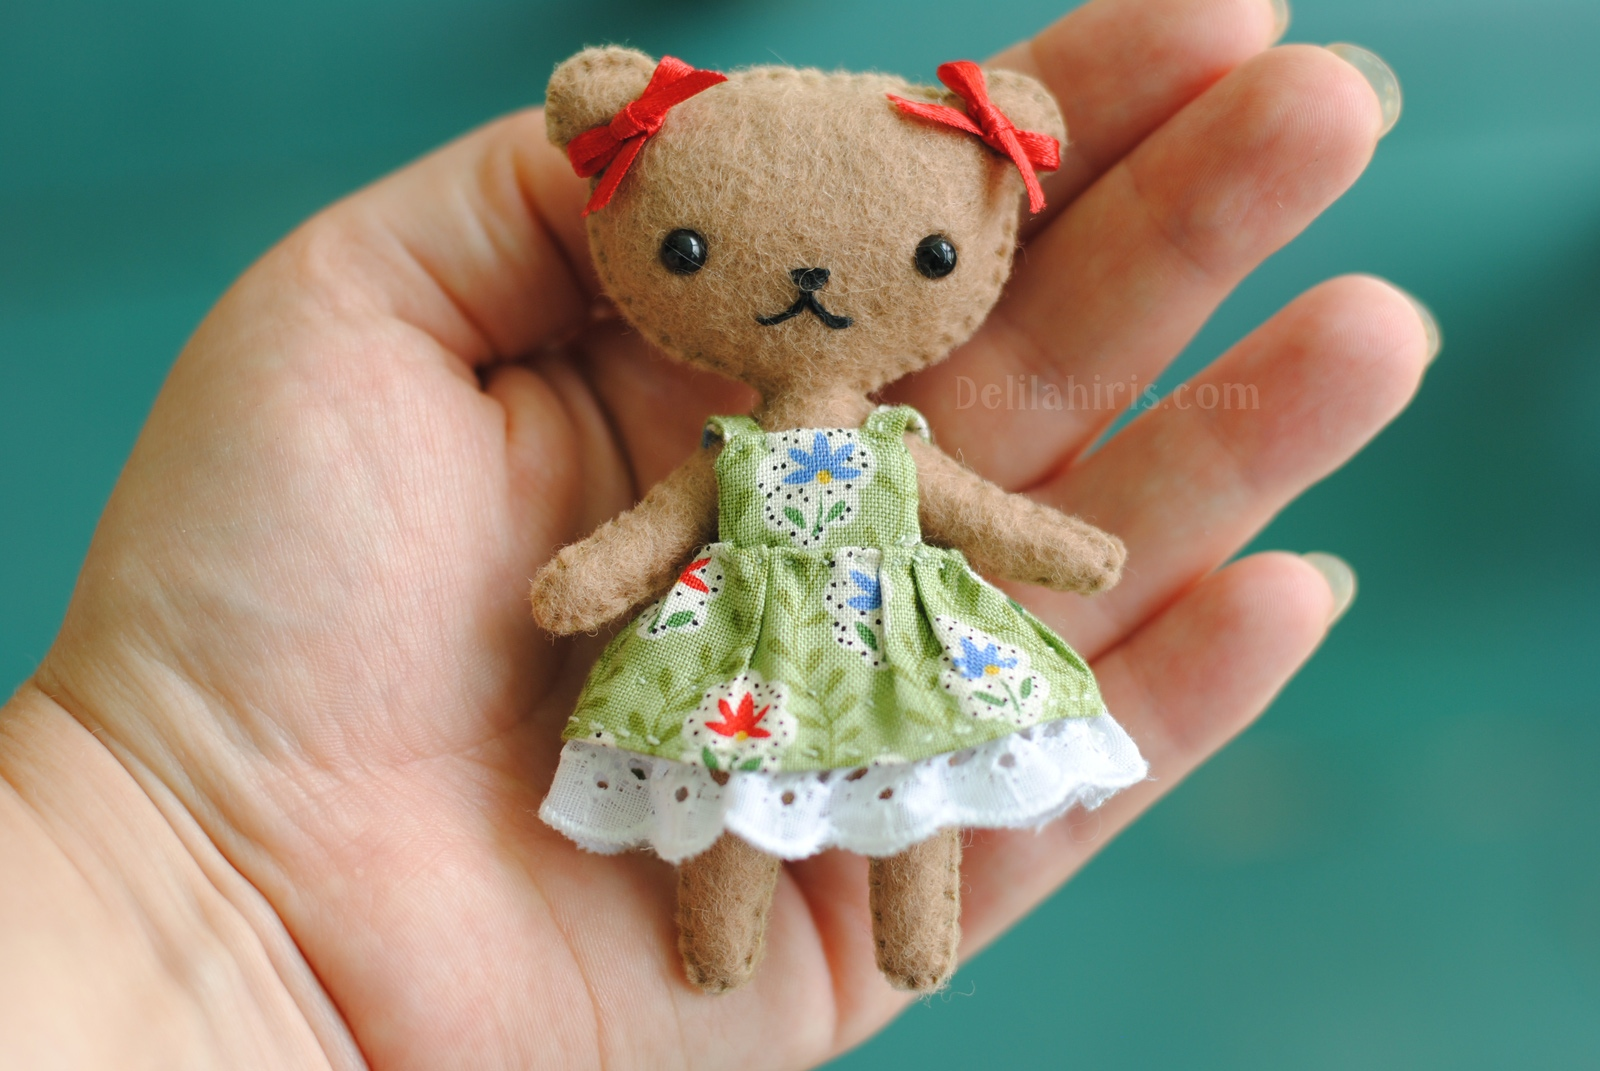 Teddy Bear Doll Sewing Pattern Delilah Iris